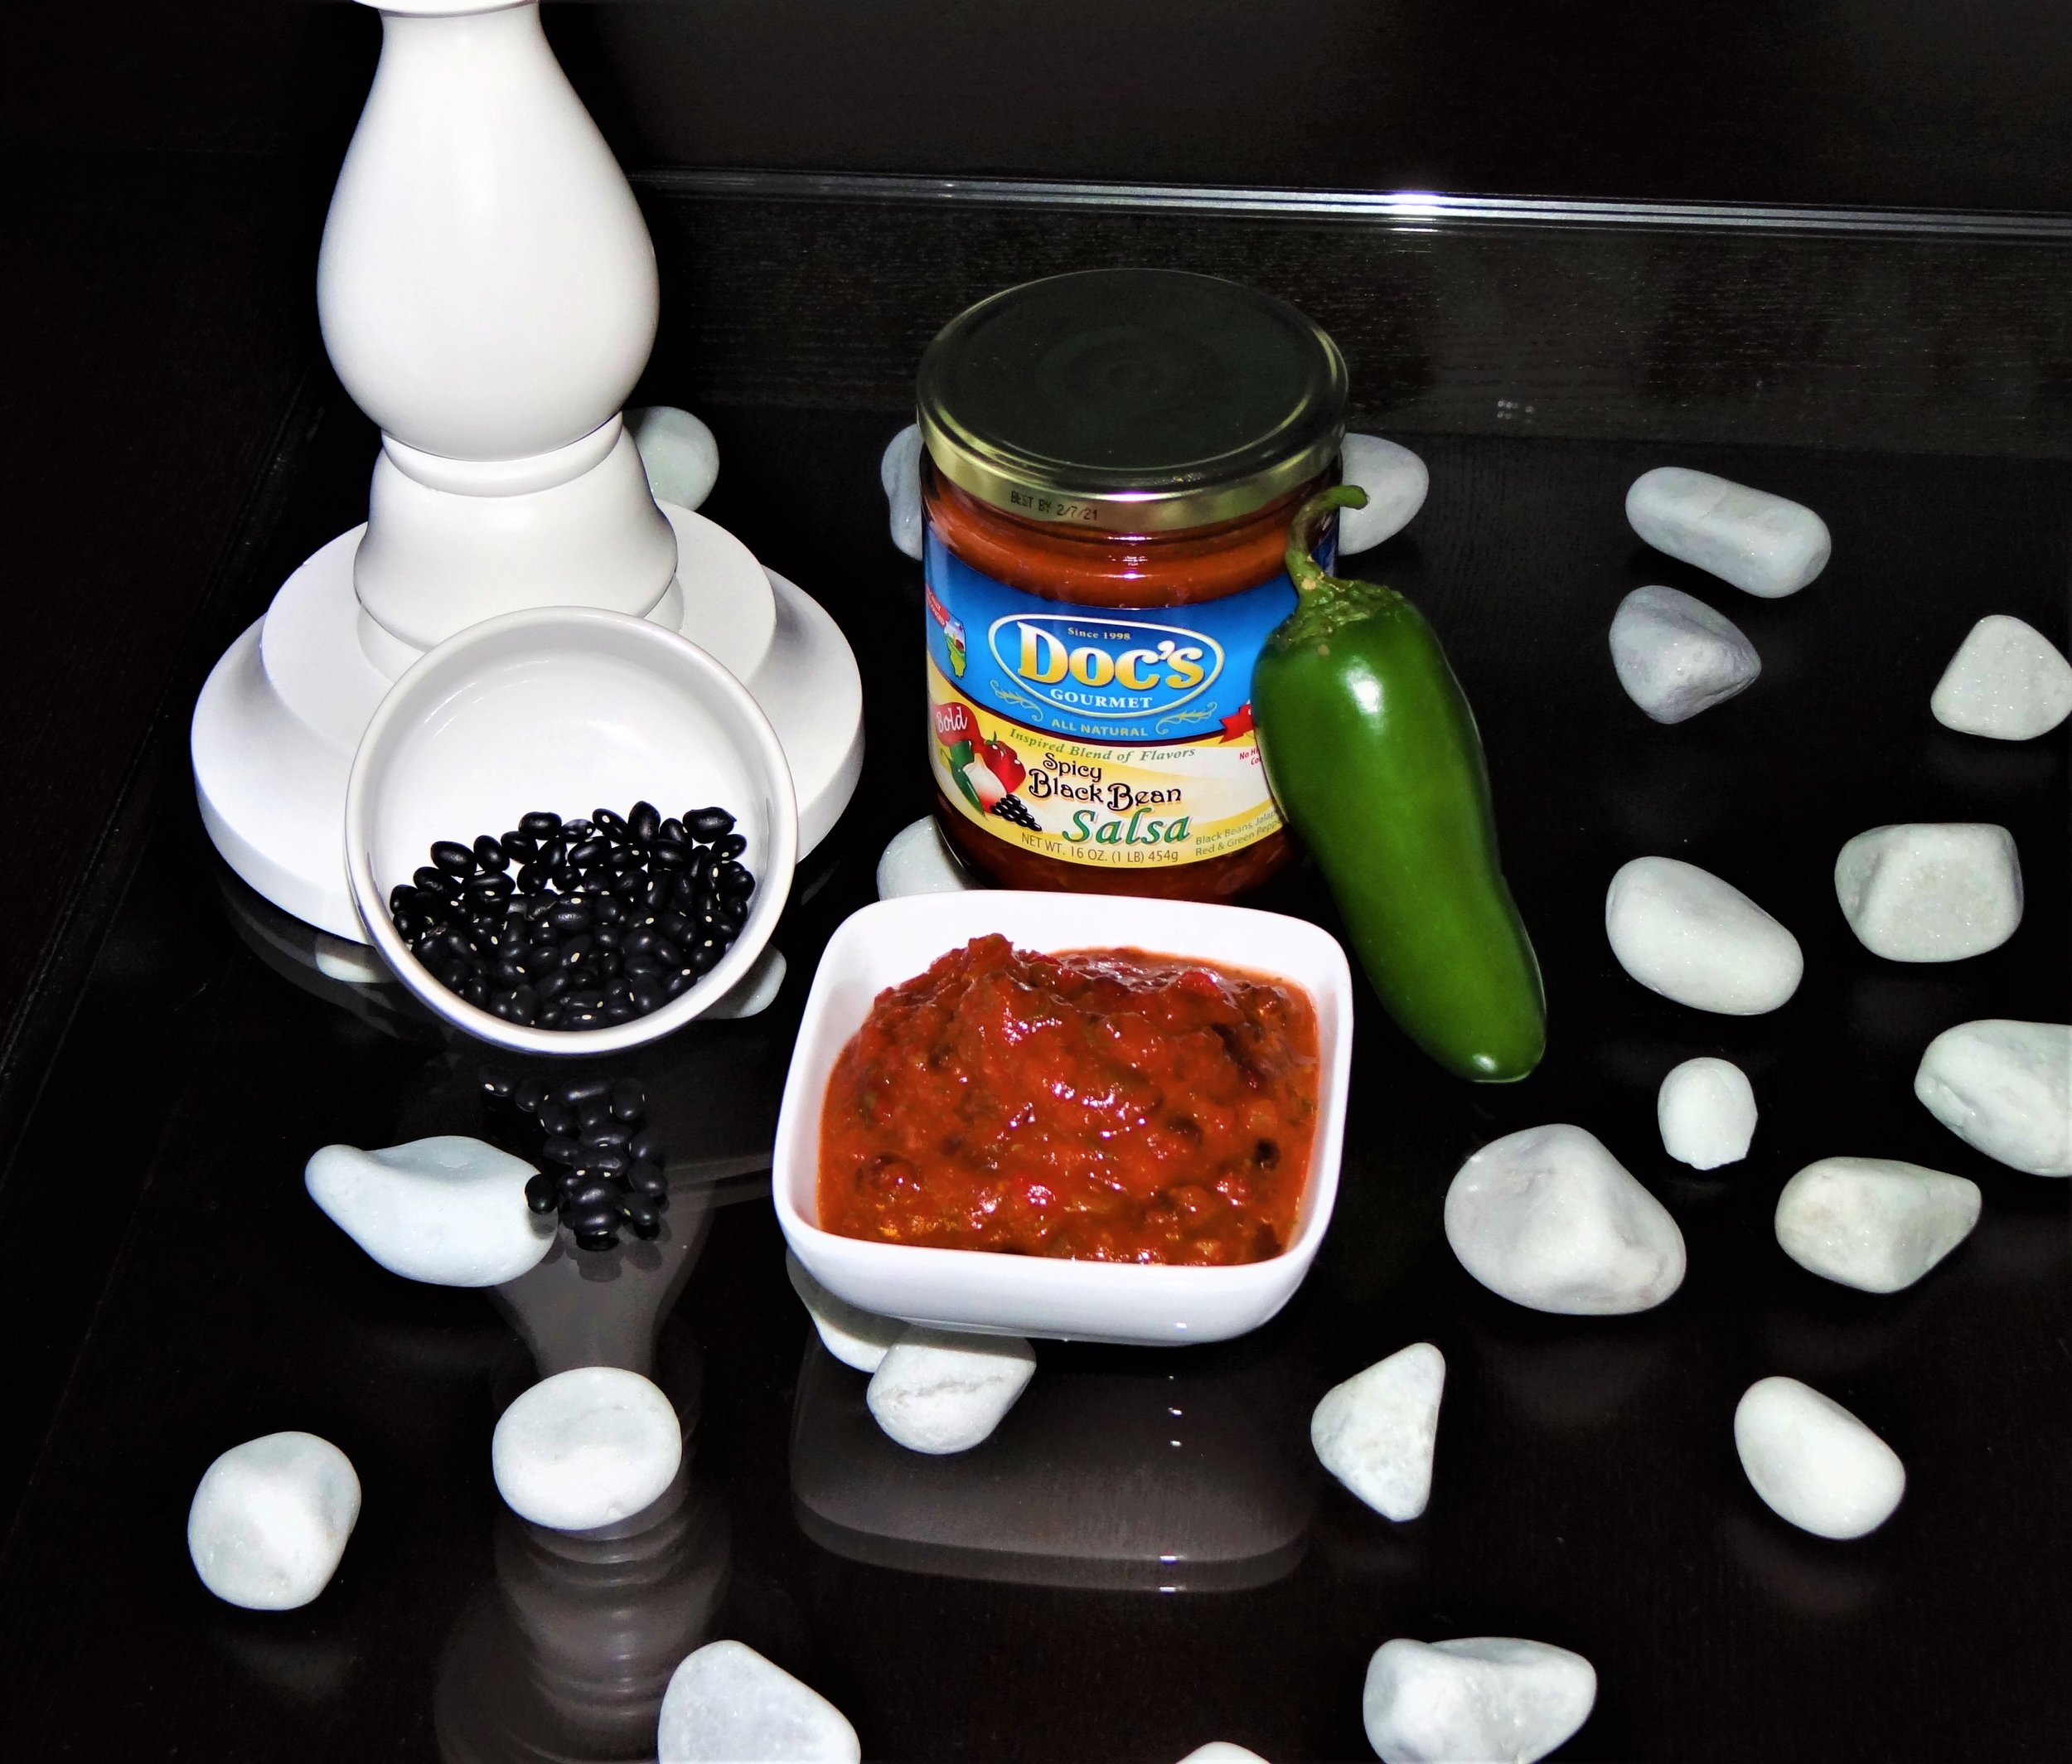 Doc's Spicy Black Bean    Salsa - Doc's Spicy Black Bean Salsa is considered Black Bean Corn's spicy older sister. This salsa is a smoky spice blend of tomatoes and peppers with whole black beans you can see and taste.This special salsa packs just enough heat for any chili, while being modest enough to eat straight out of the jar.